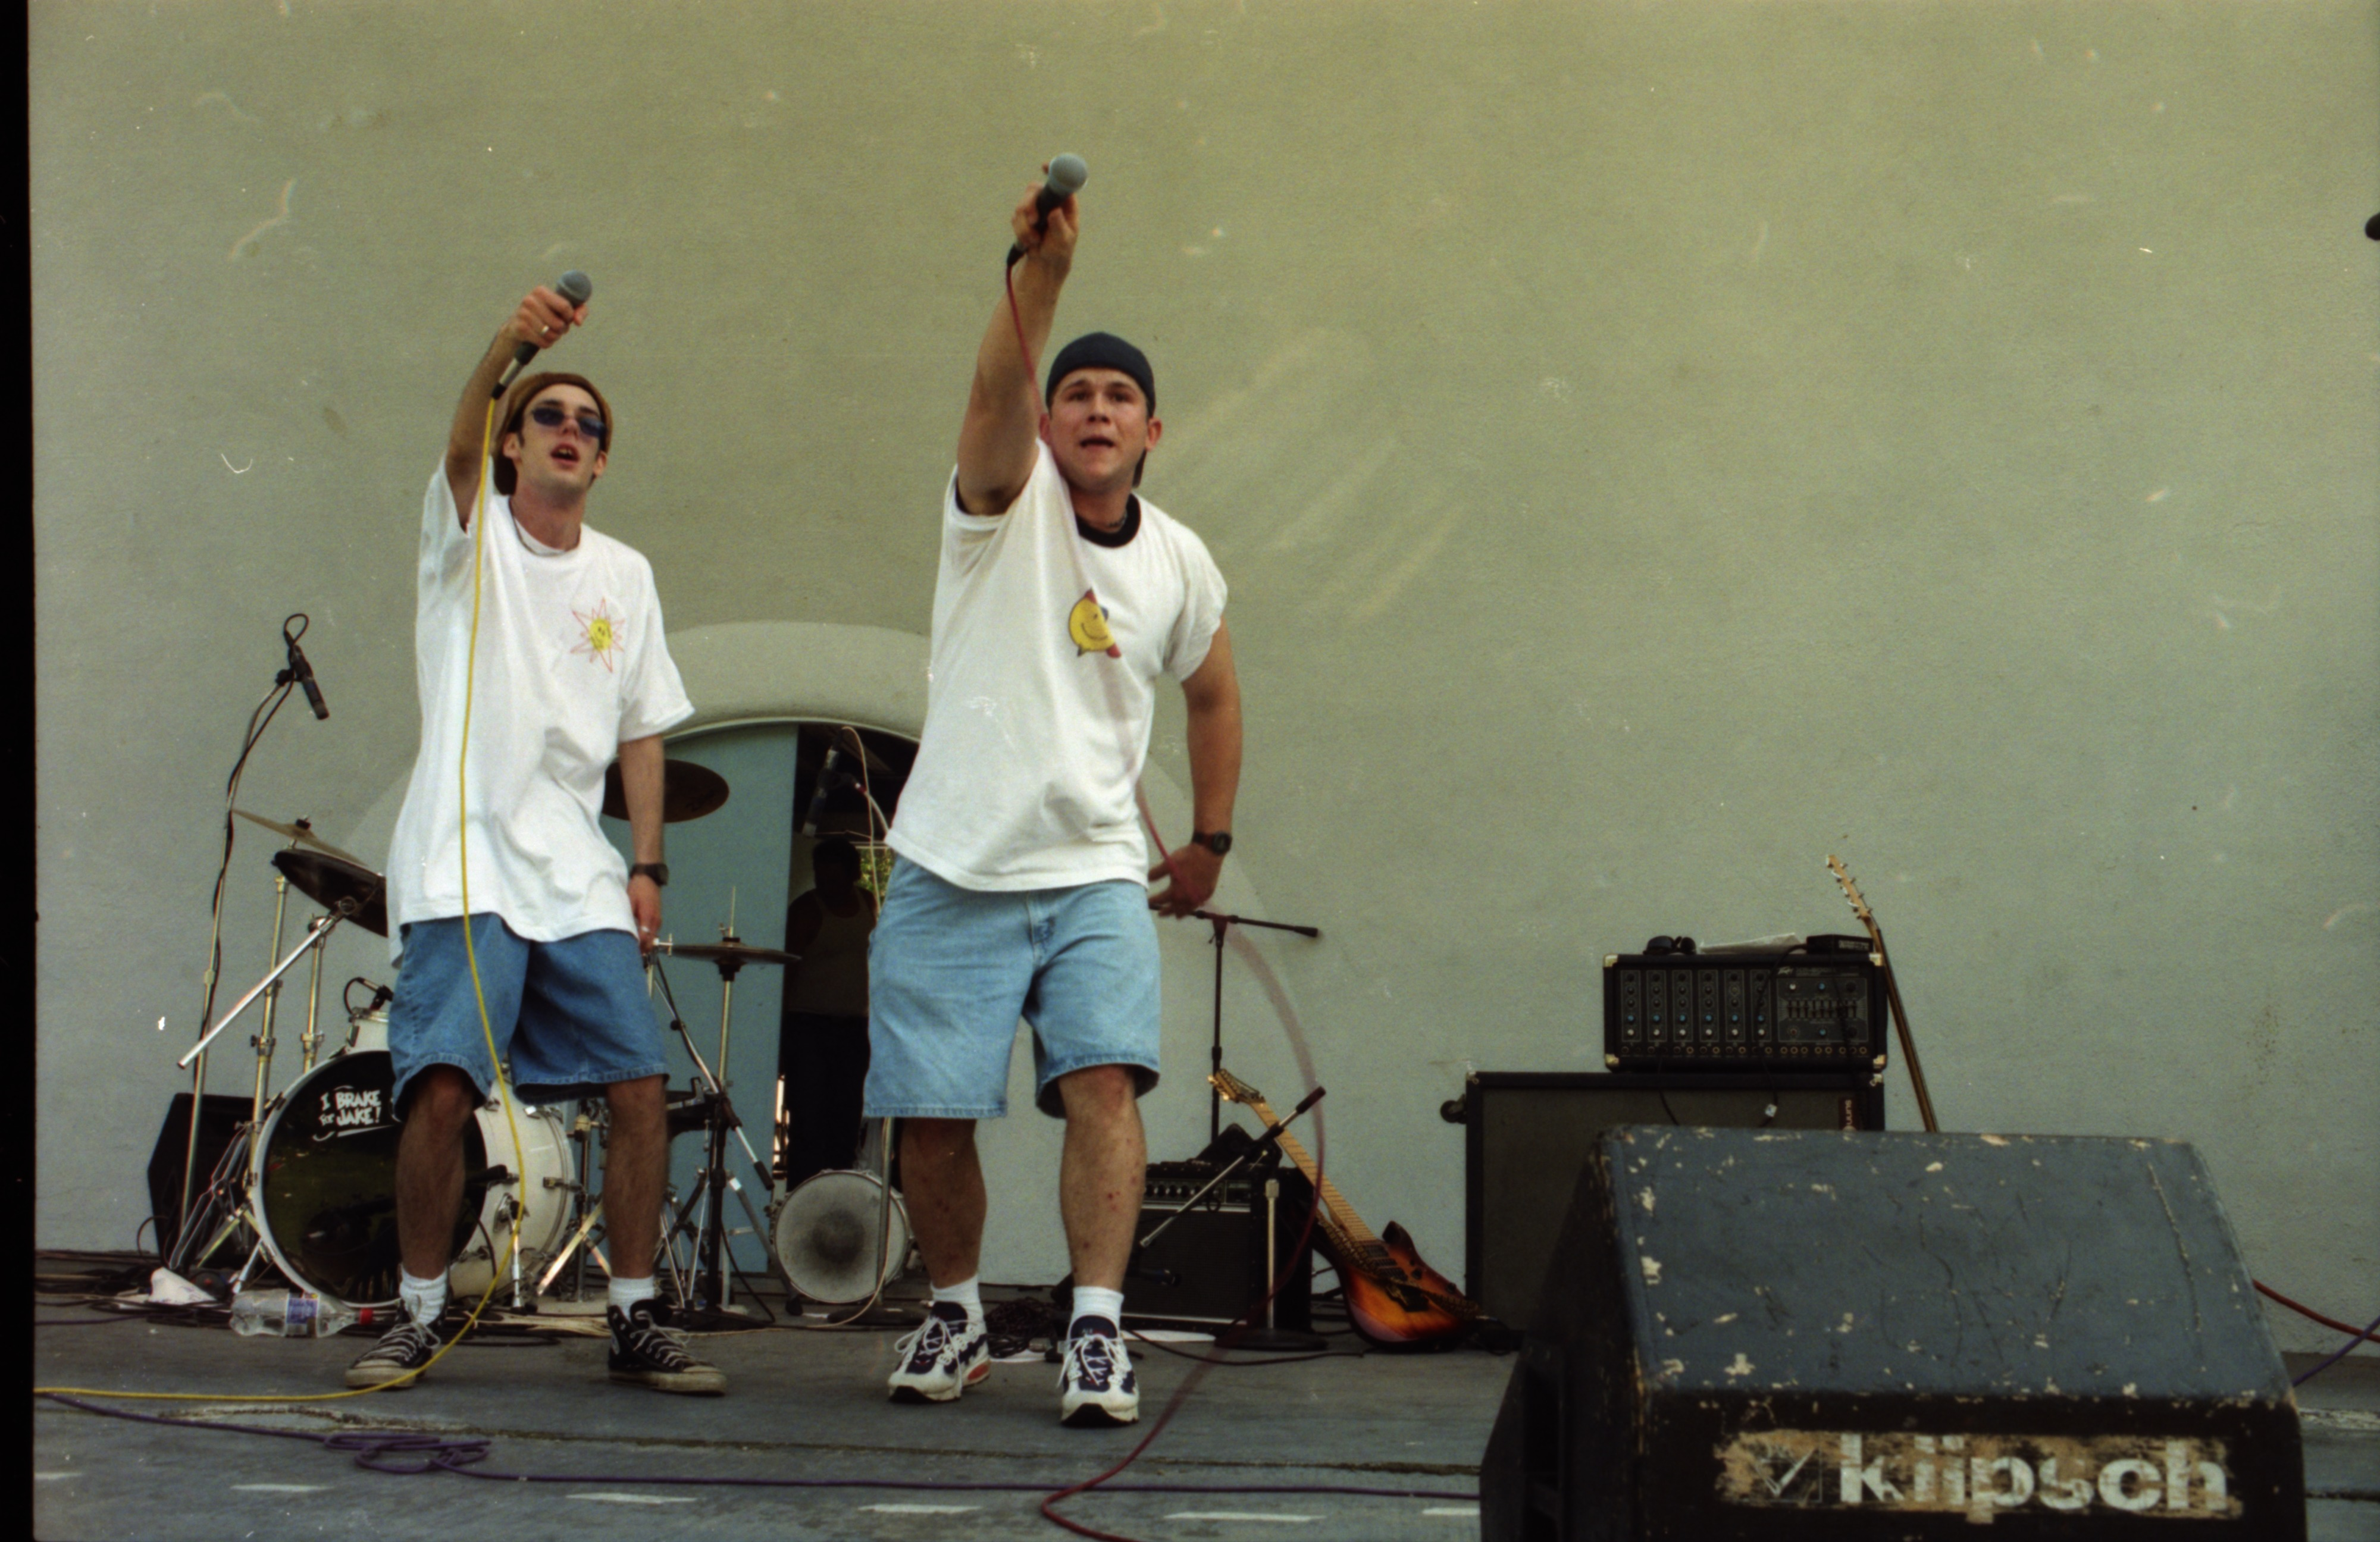 Jon Gore and Bob Lillie of The Committee, a local hip-hop band, perform at Comstock, West Park, June 13, 1996 image